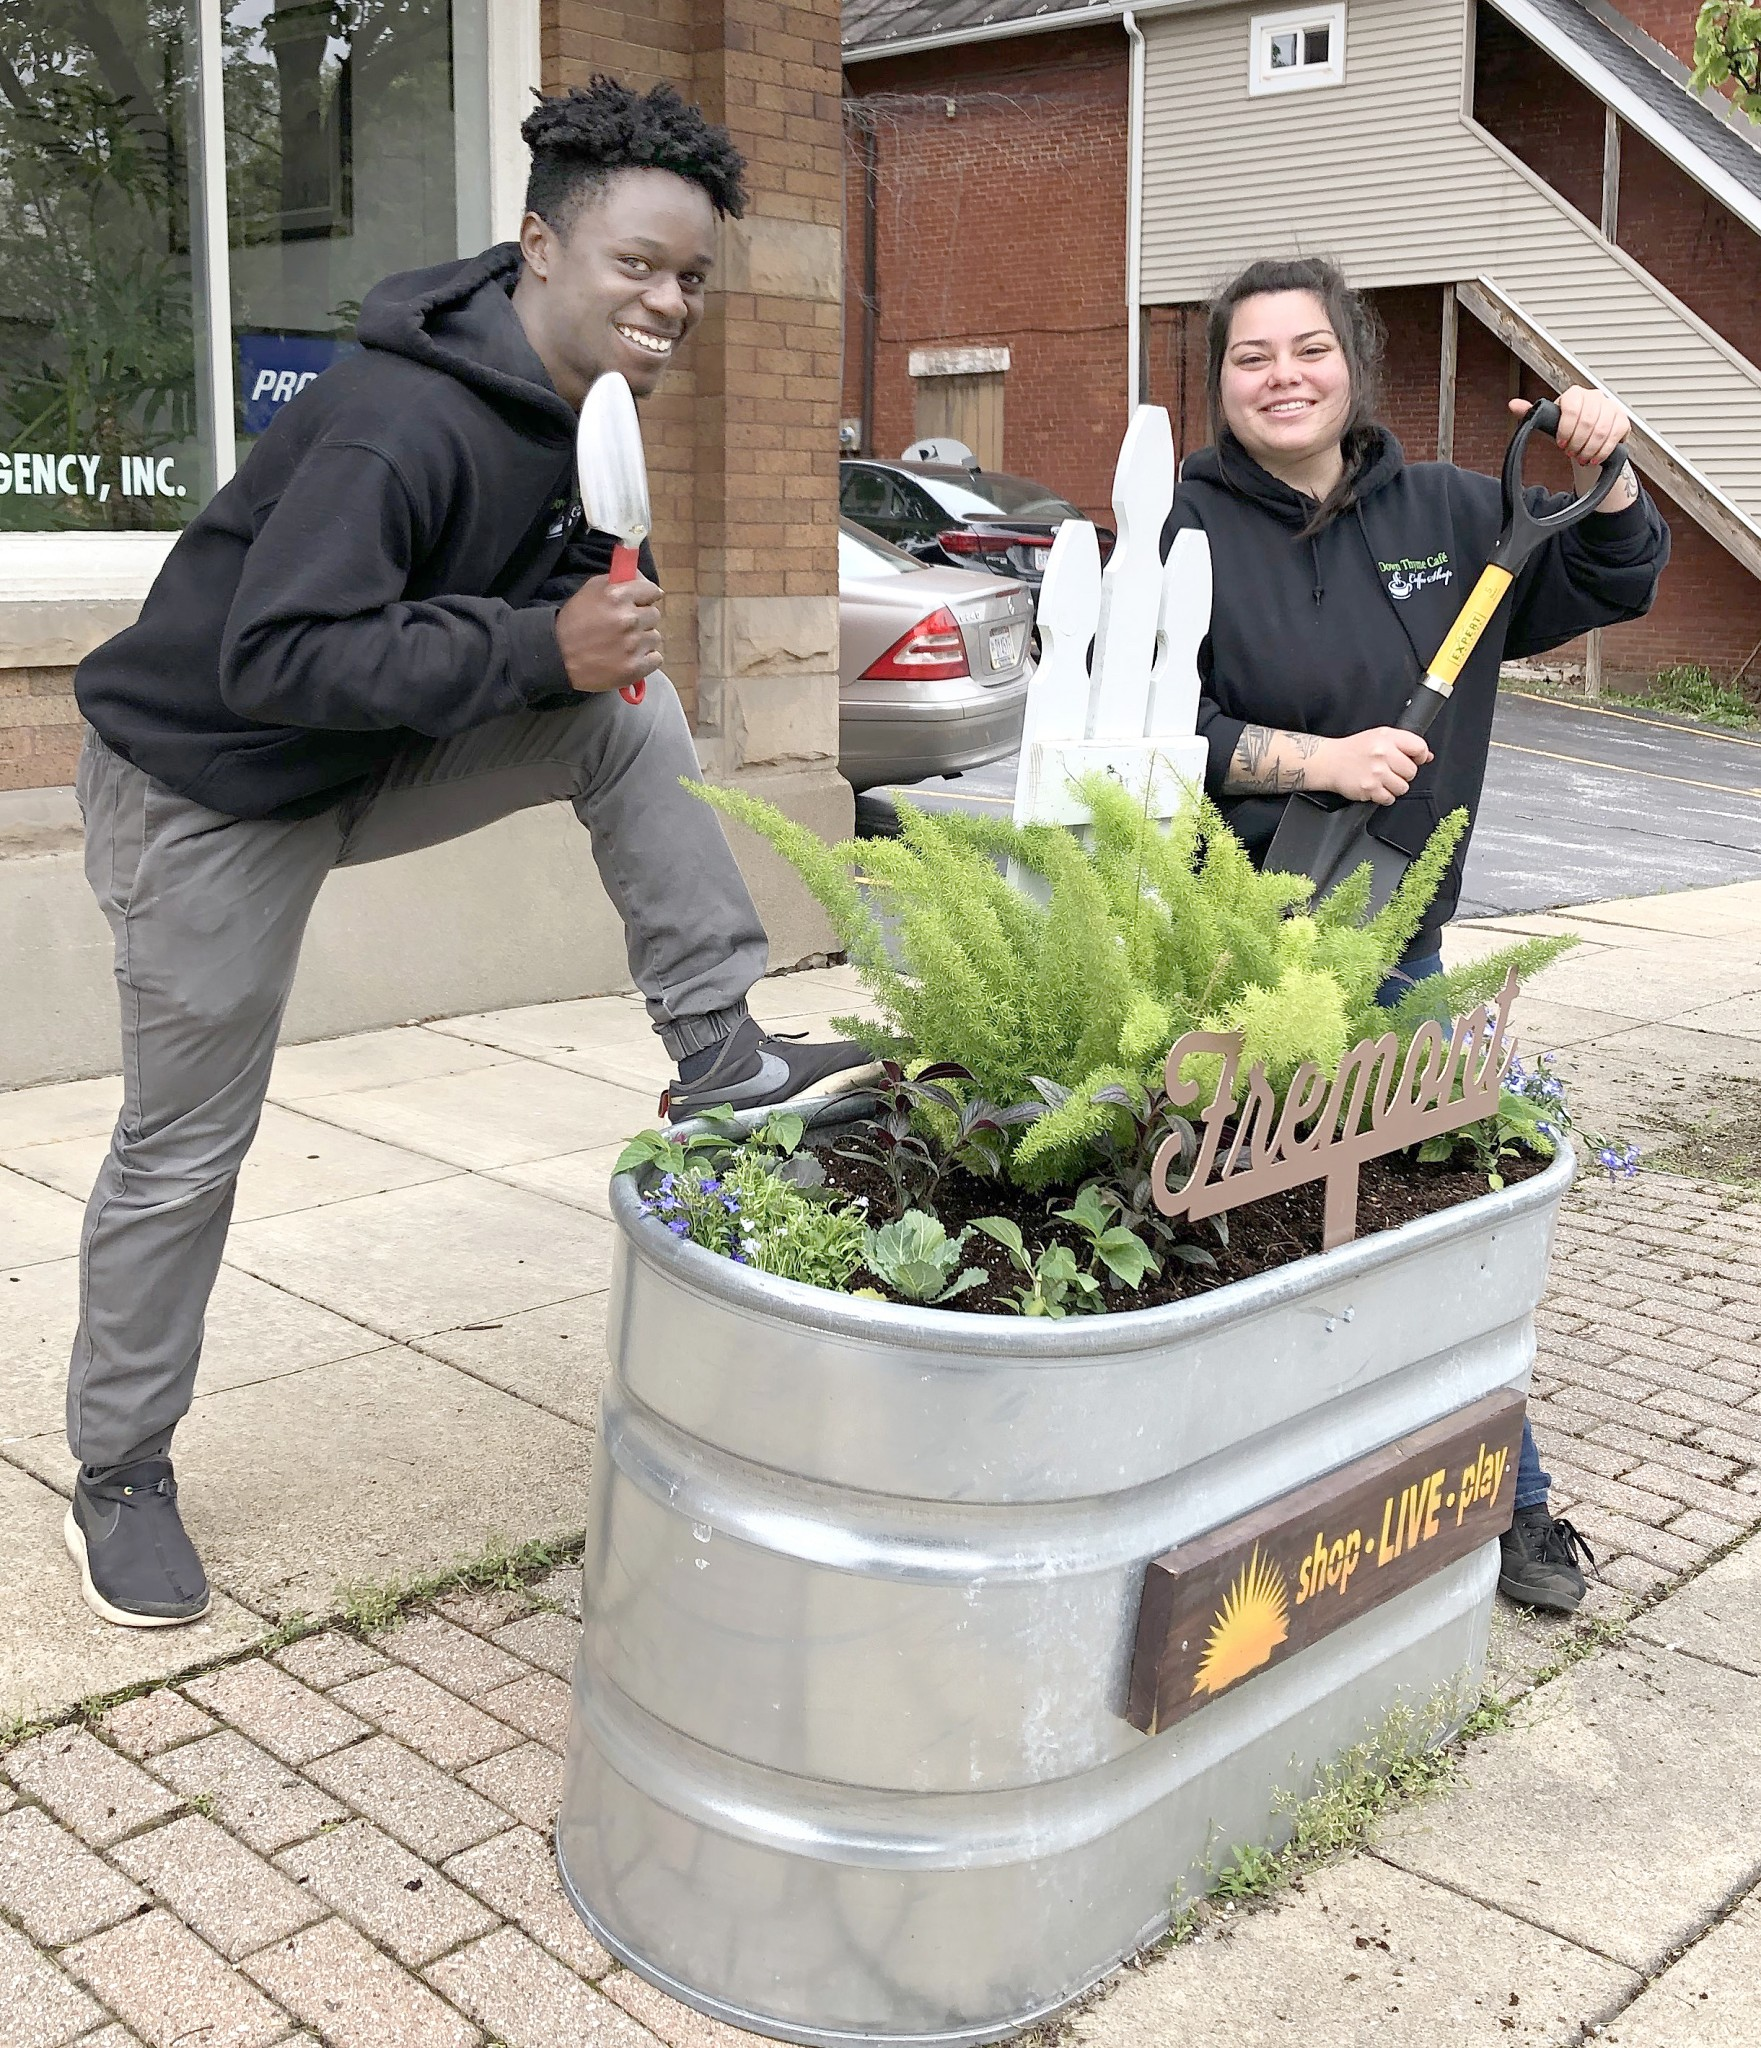 Employees from The Garrison restaurant, in partnership with Downtown Fremont, Inc., created three different designs for downtown planters as part of a cleanup and beautification of the downtown area. (Submitted photo)